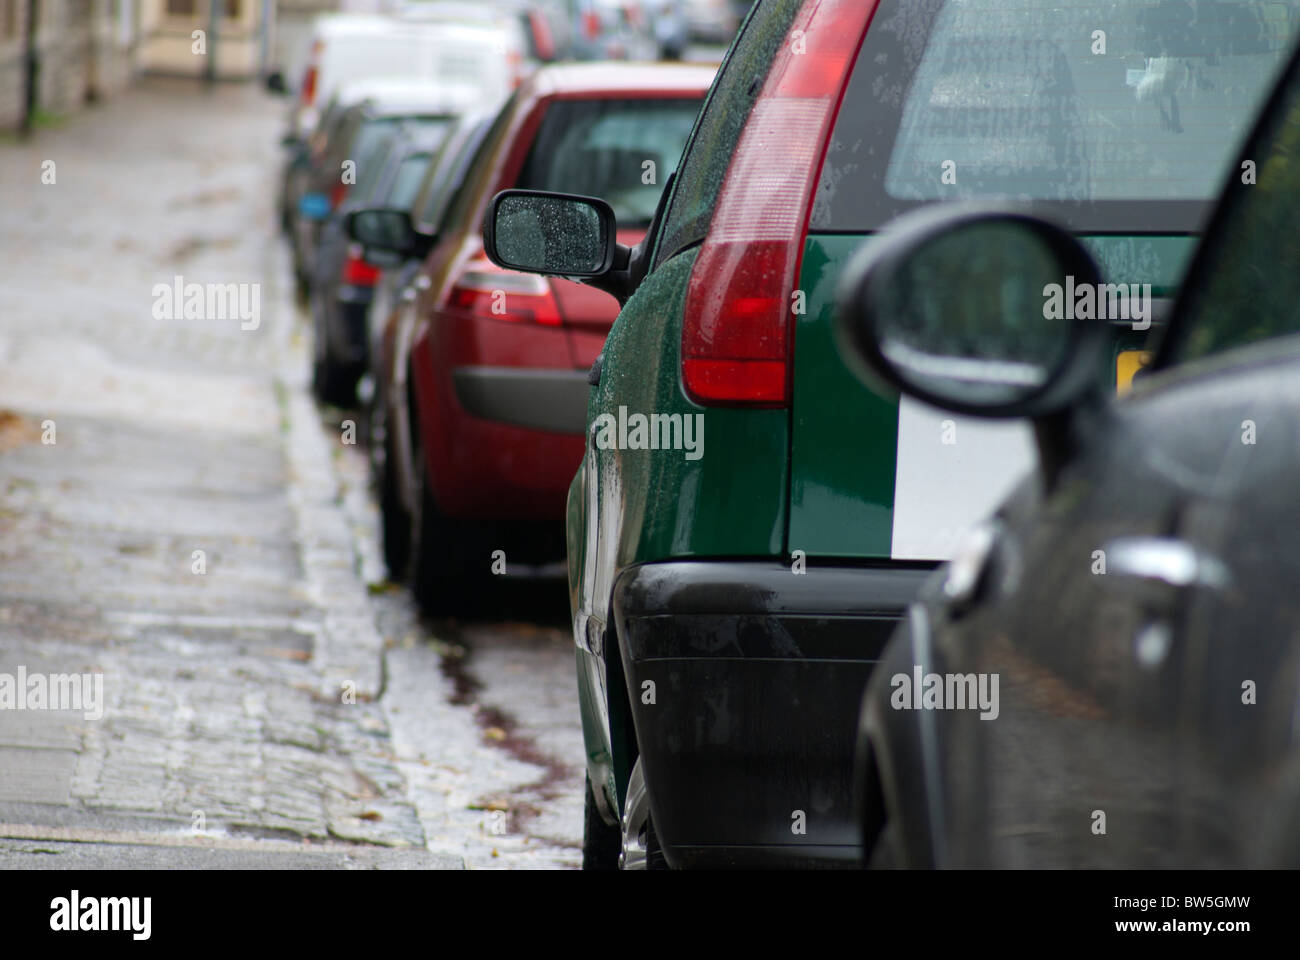 Cars Parked in Street - Stock Image